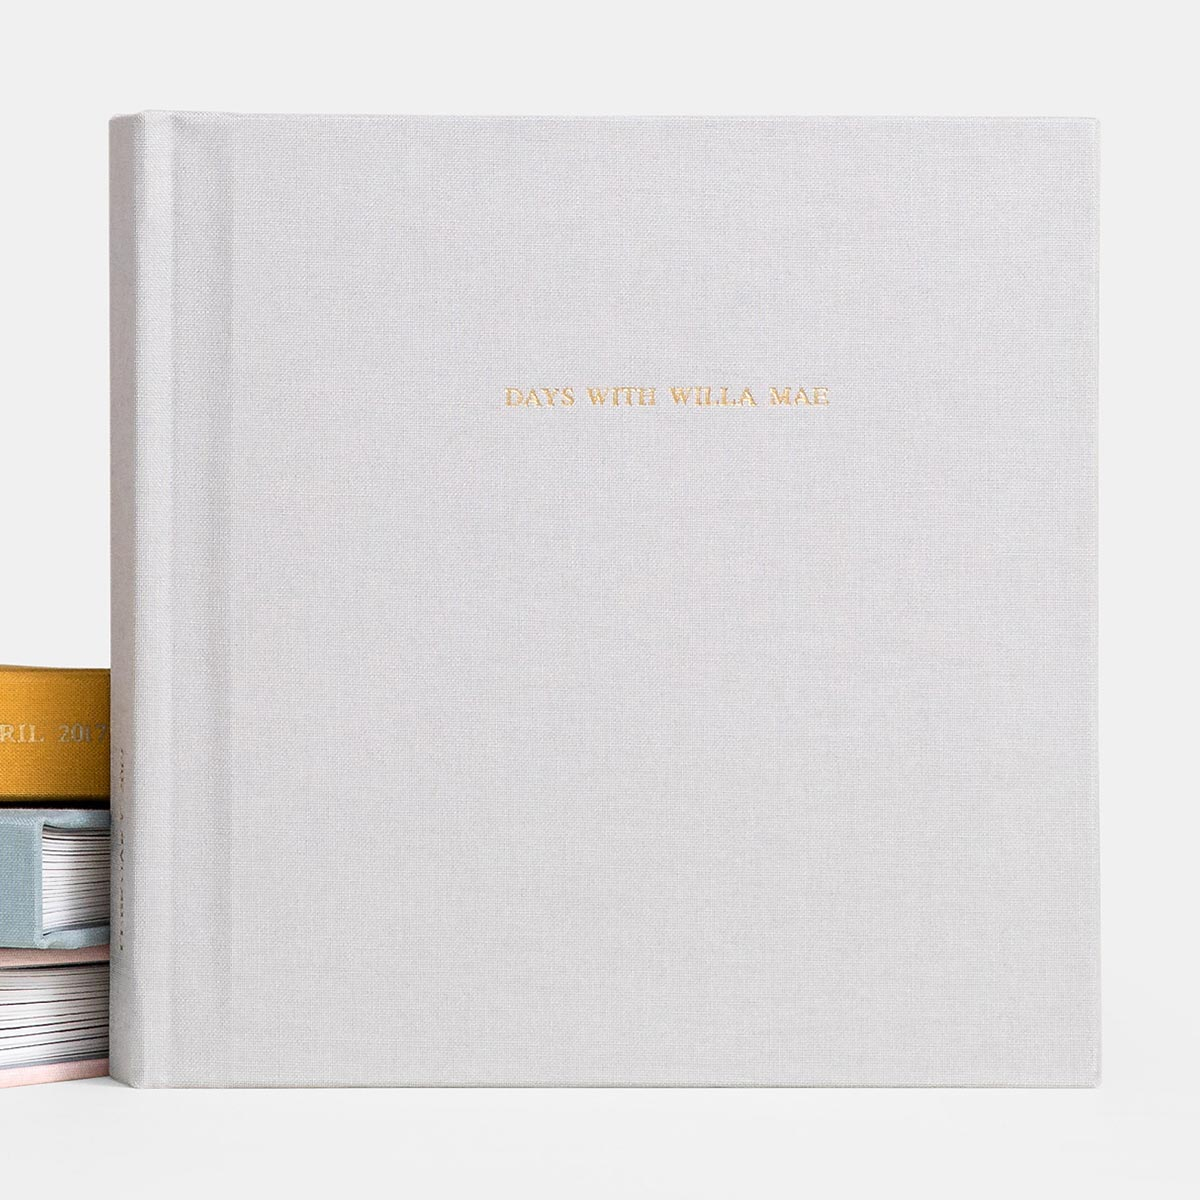 Foil-stamped gold title on cover of Everyday Photo Book titled days with willa mae